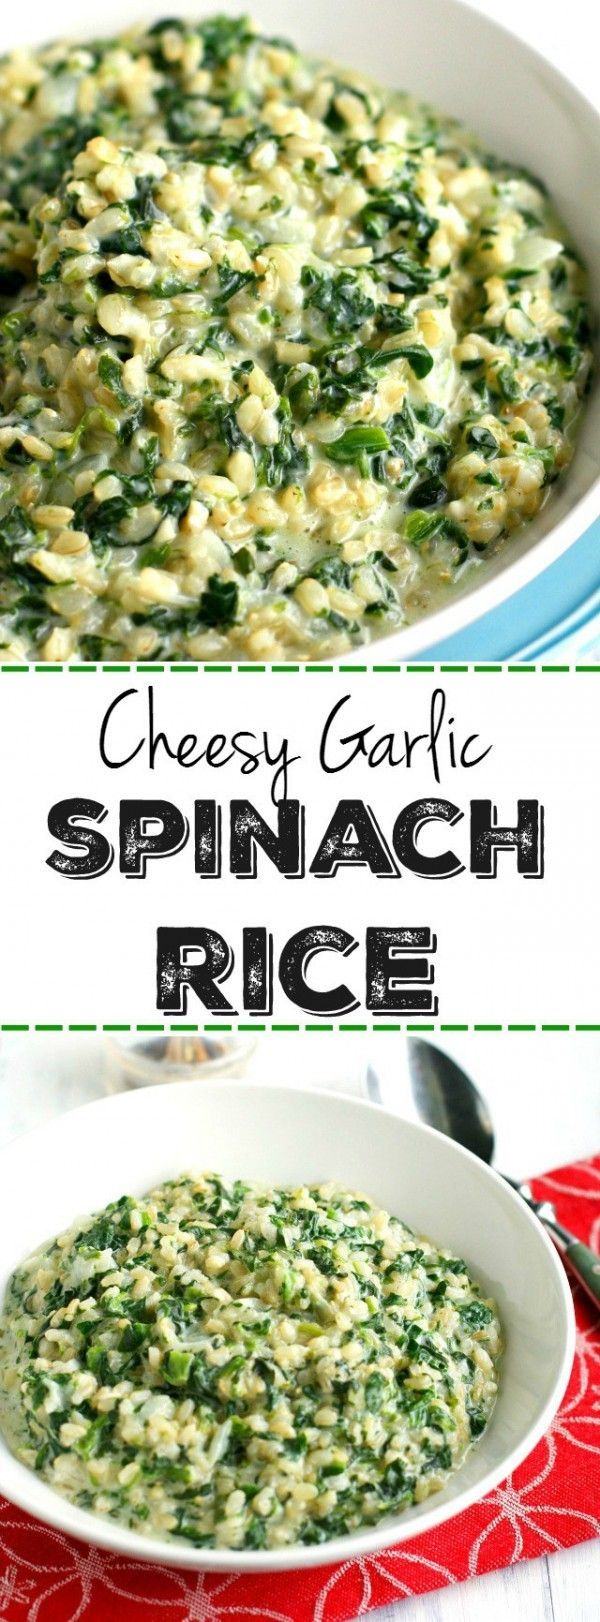 Get the recipe Cheese Garlic Spinach Rice @recipes_to_go